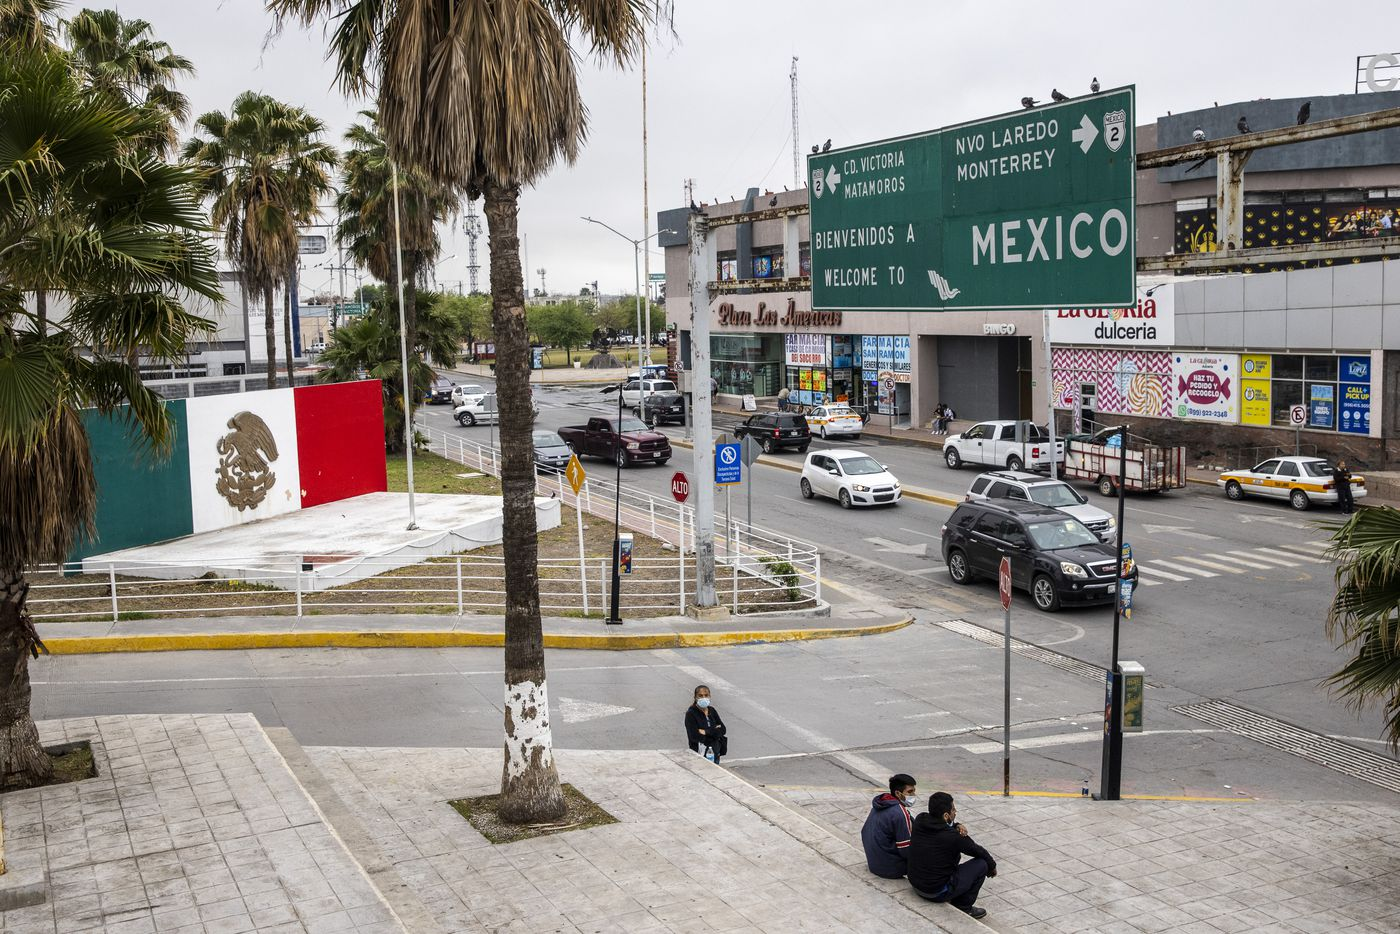 The plaza near the international bridge leading into Reynosa, in Mexico. Although the U.S. continues to expel migrants under Title 42 — a pandemic-related public order still in place and left over from the Trump administration, the Mexican government in Tamaulipas is not allowing the return of expelled migrant families with children age six or under.